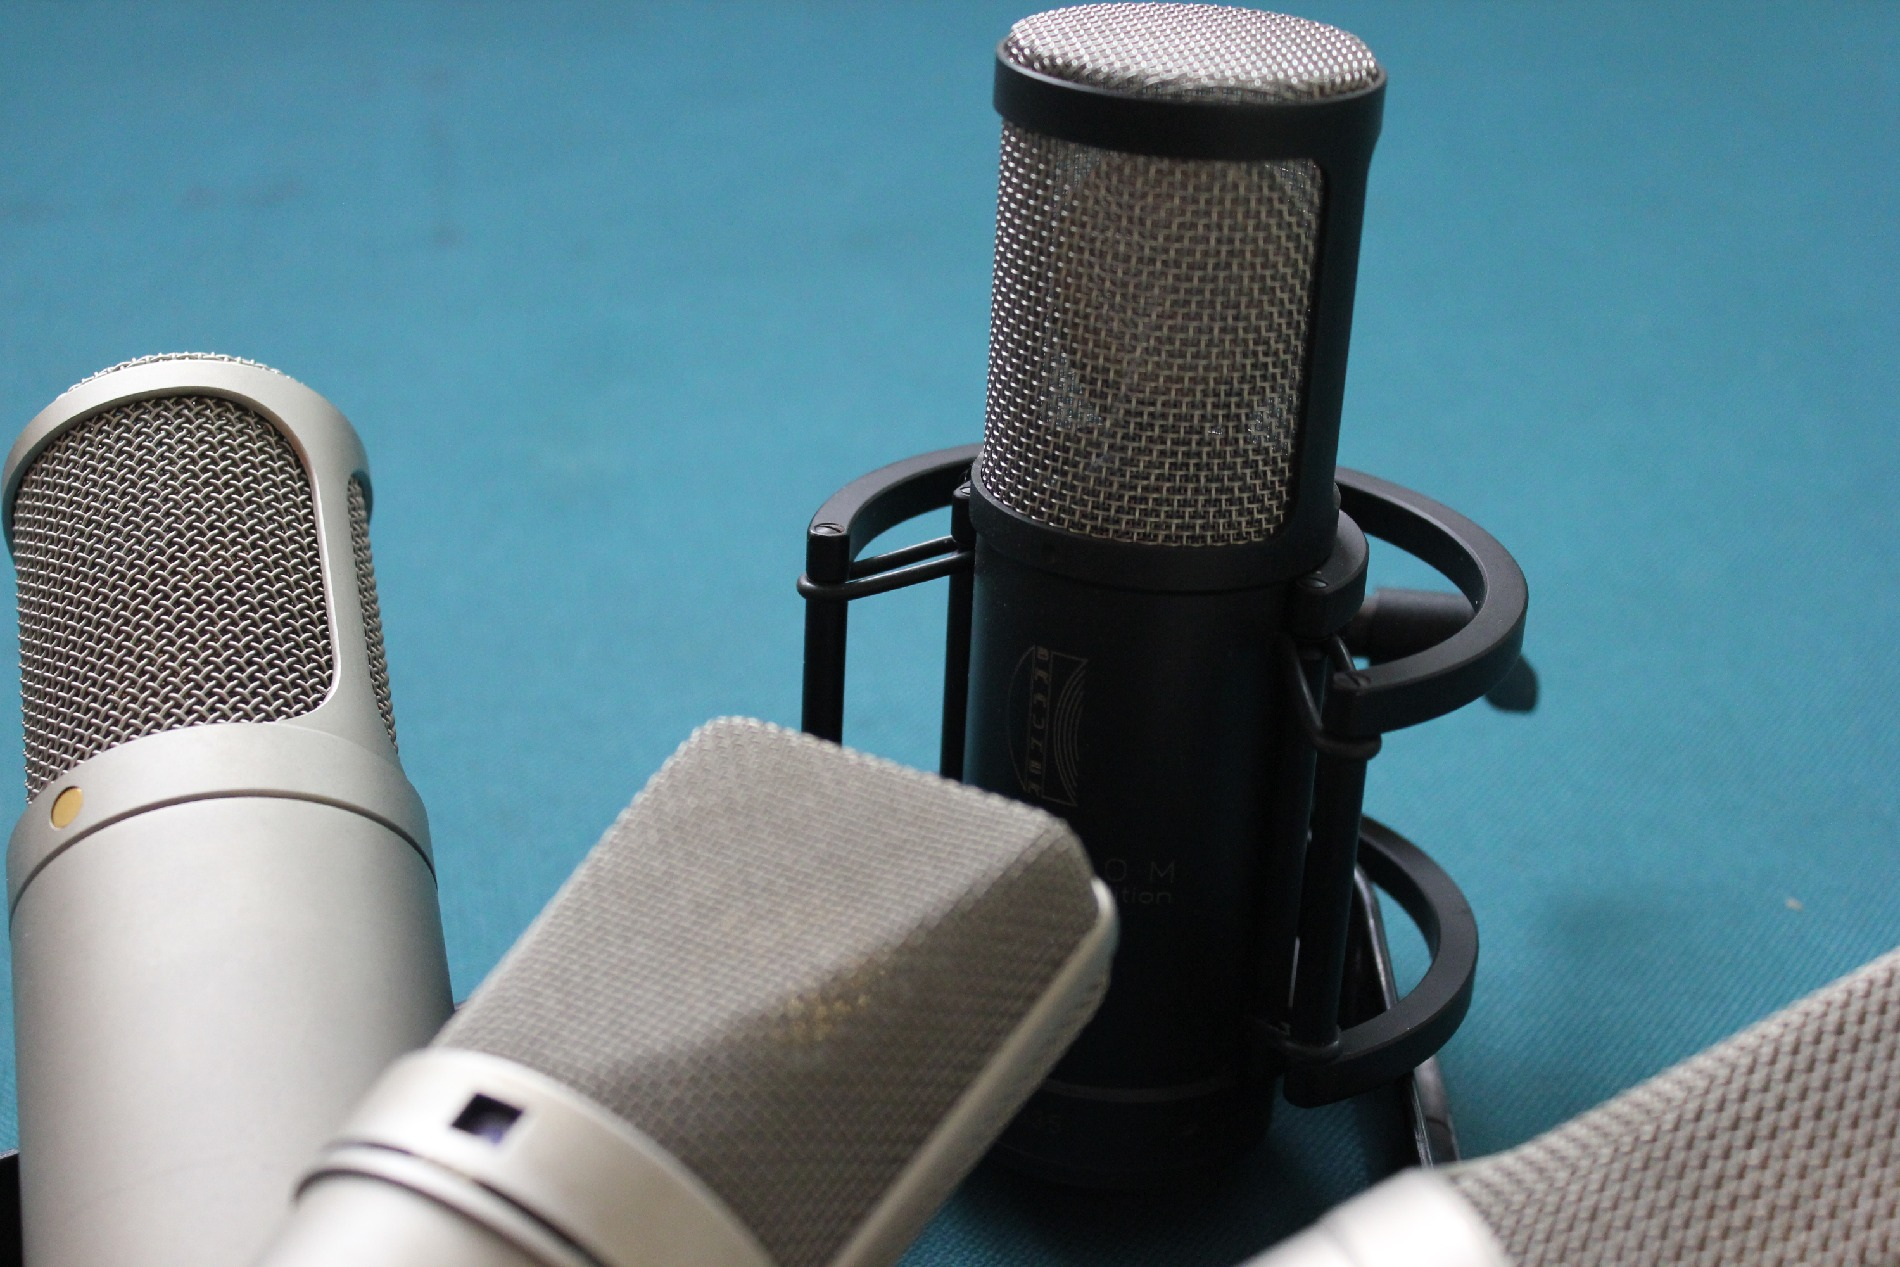 Our voice over mics on table